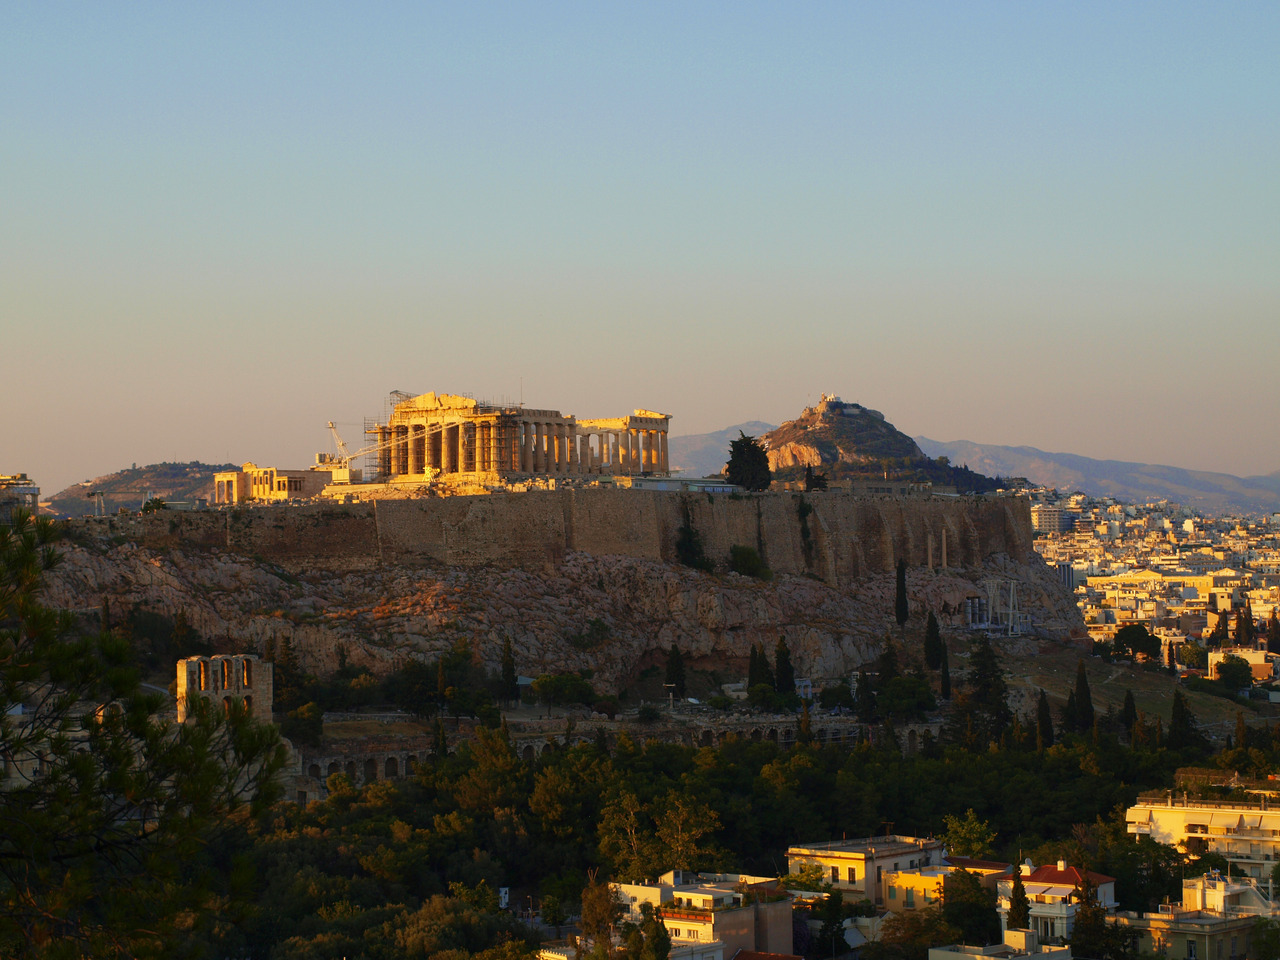 rebeccaathome:  Acropolis  I was looking through pictures today and I found a hidden nice one! I love that feeling!